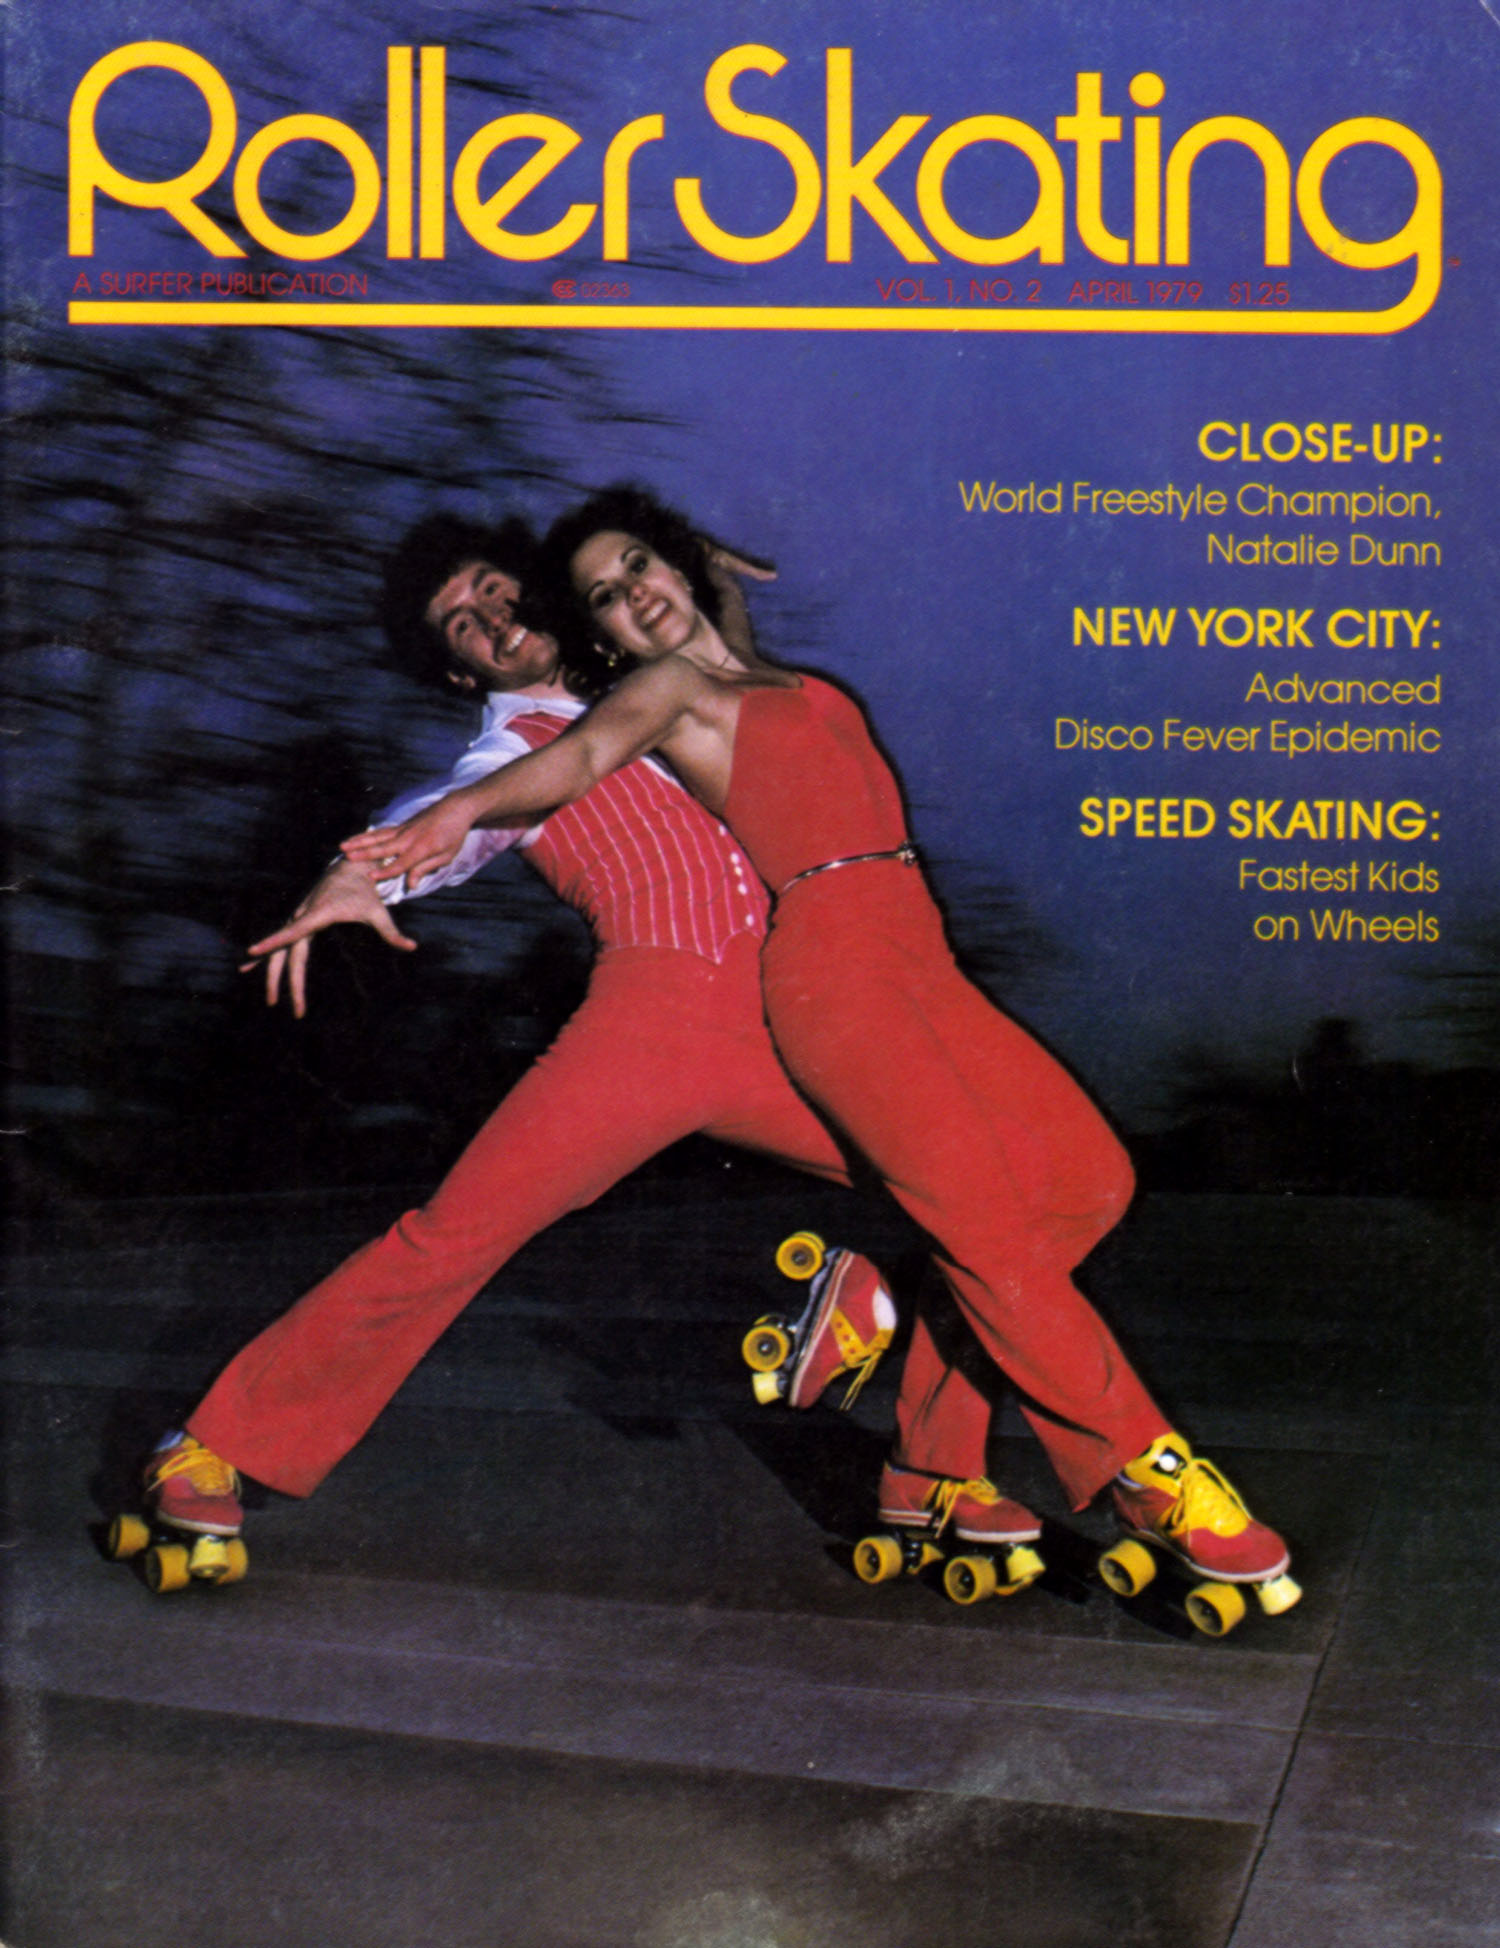 roller skating magazine cover (2)